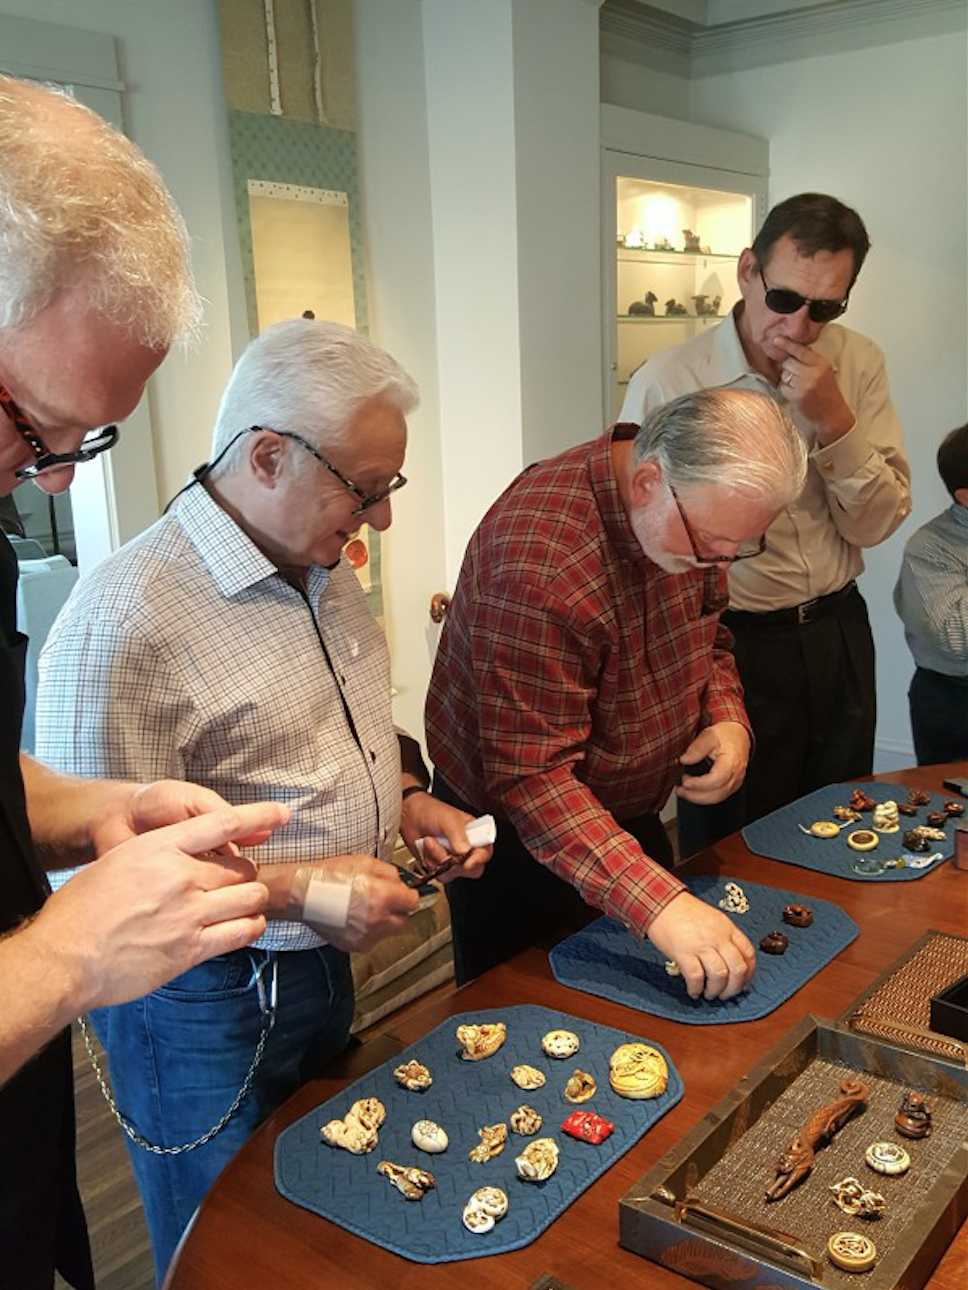 Screen Shot 2017-10-29 at 18.37.25.png